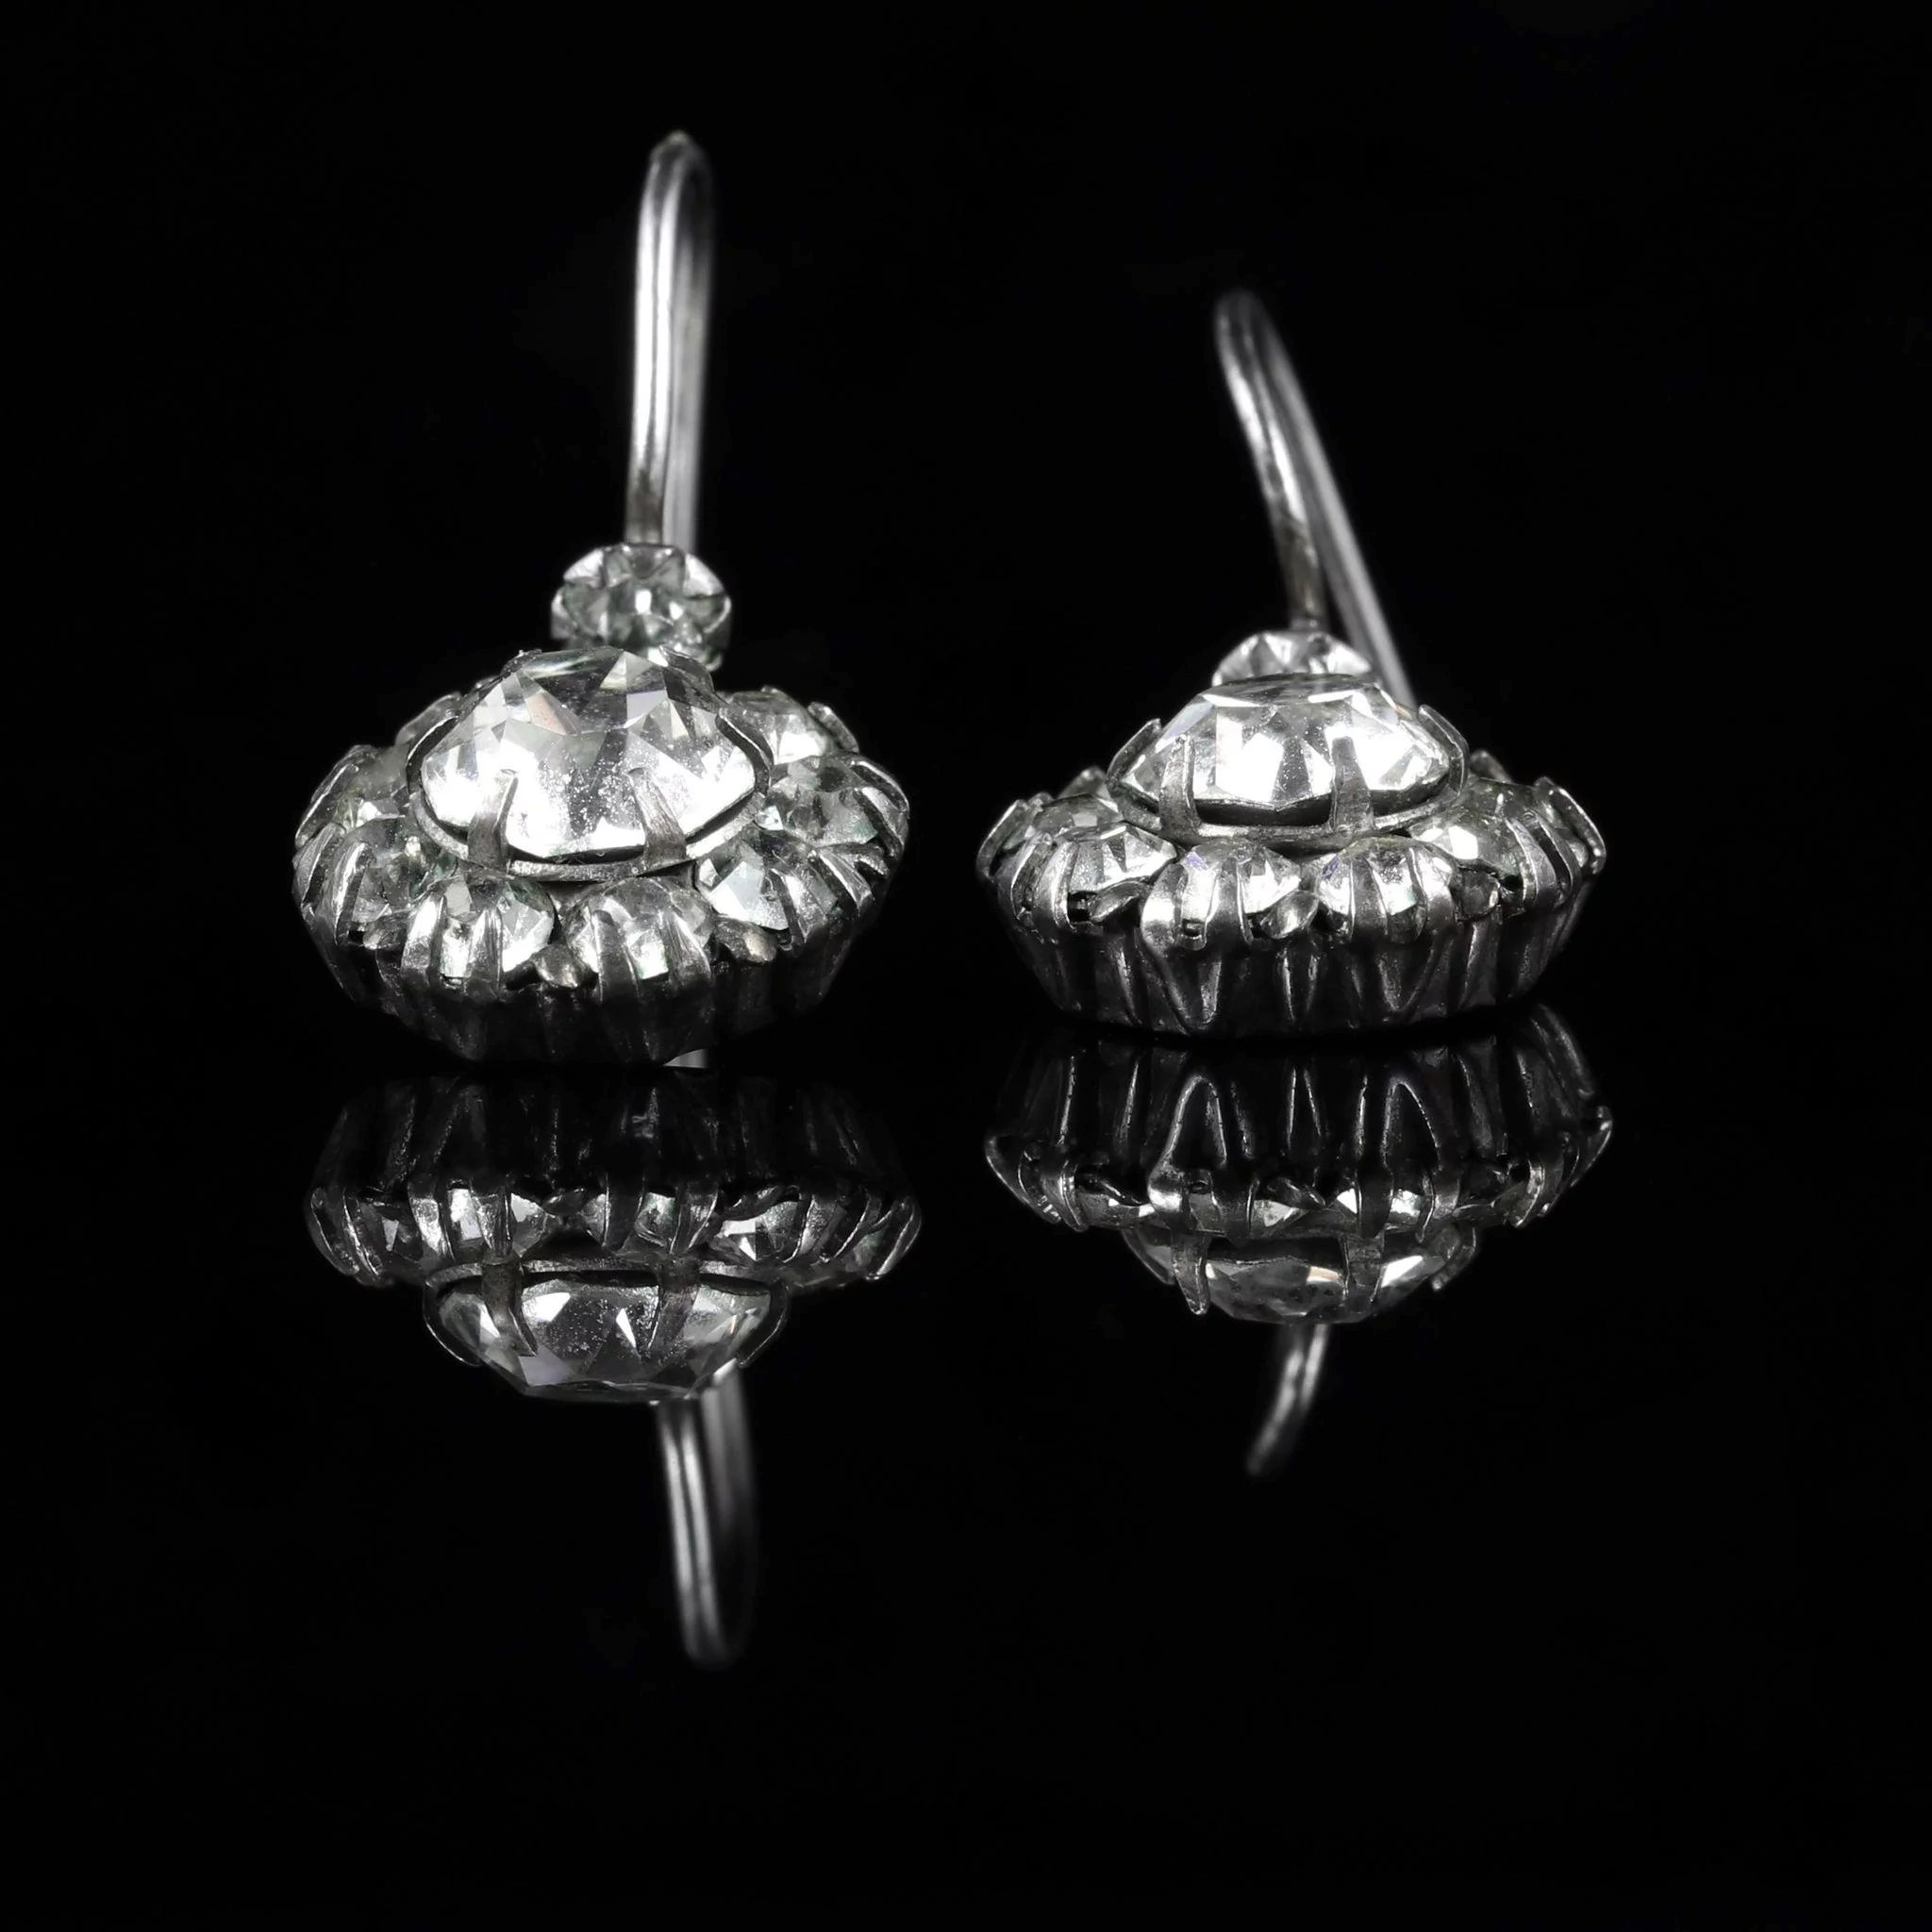 victoria products victorian earrings silver antique horseshoe sterling